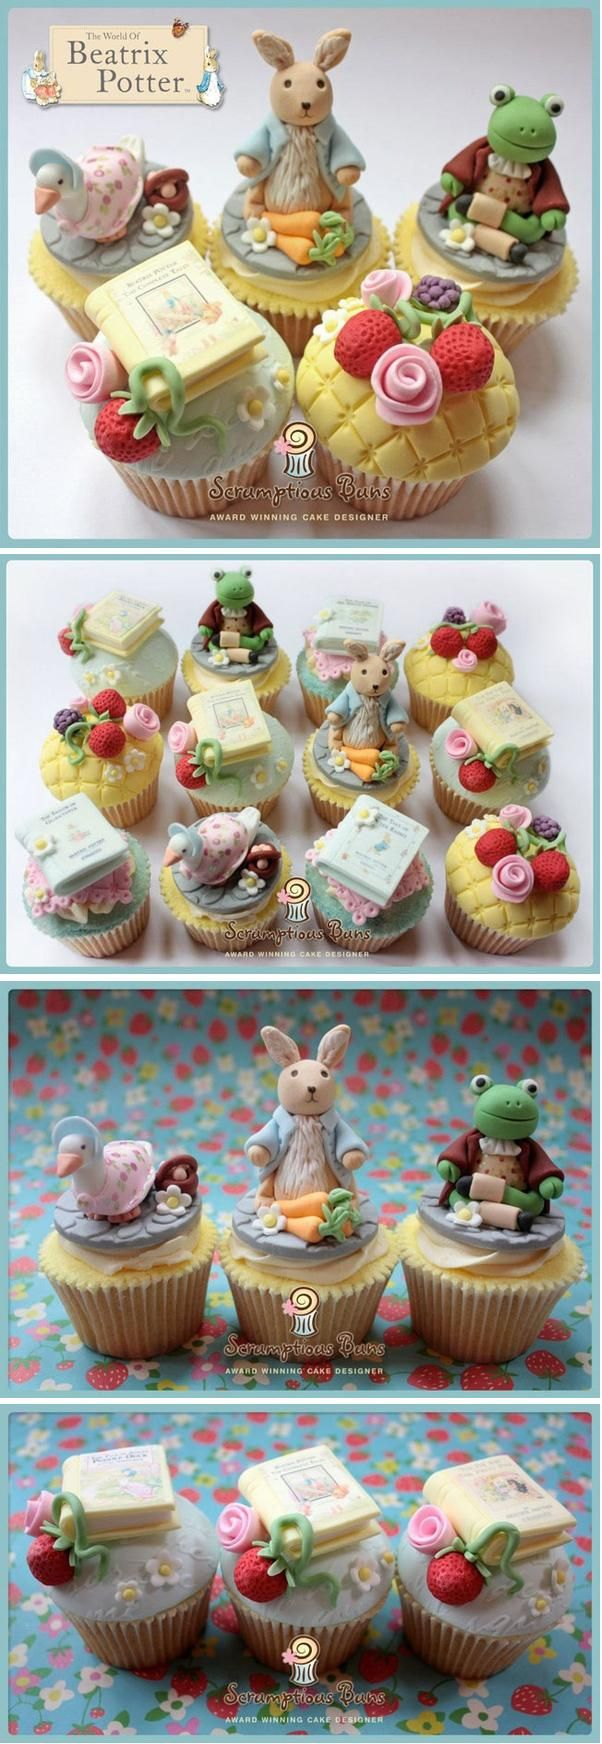 Beatrice Potter Cupcakes - These are amazing...more like a work of art really!!!